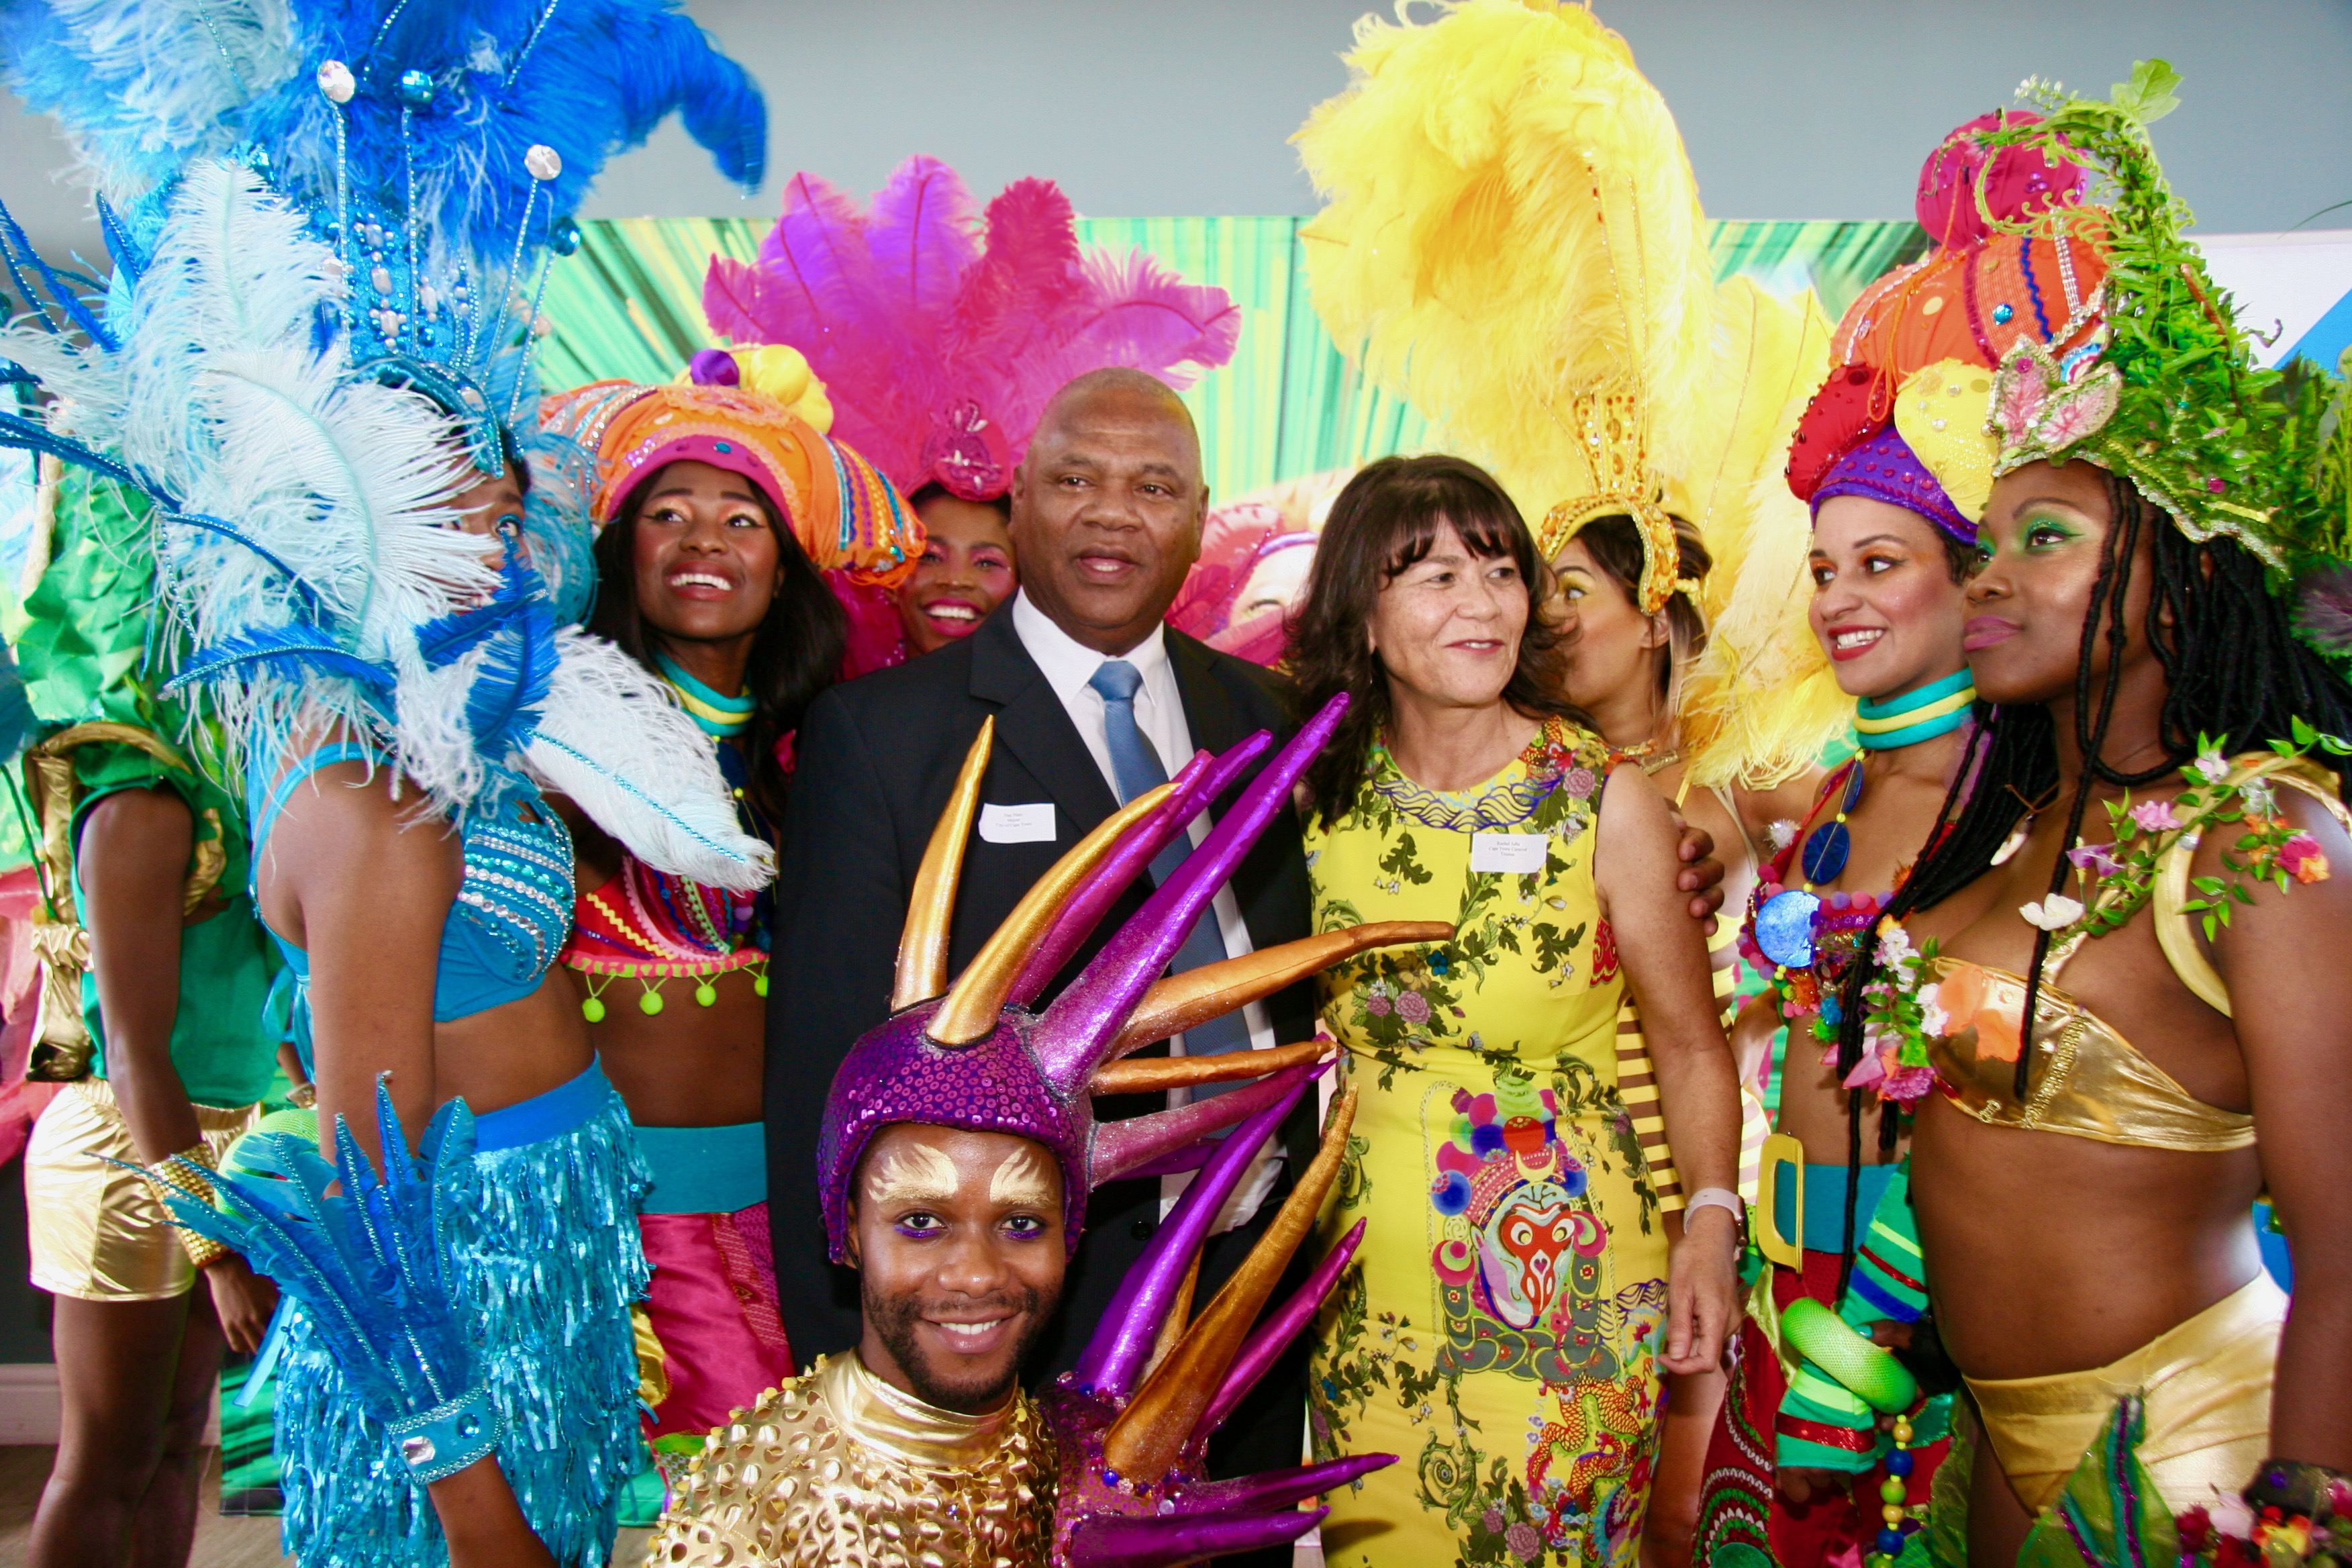 EXCITEMENT IS BUILDING FOR ANNUAL CAPE TOWN CARNIVAL IN MARCH